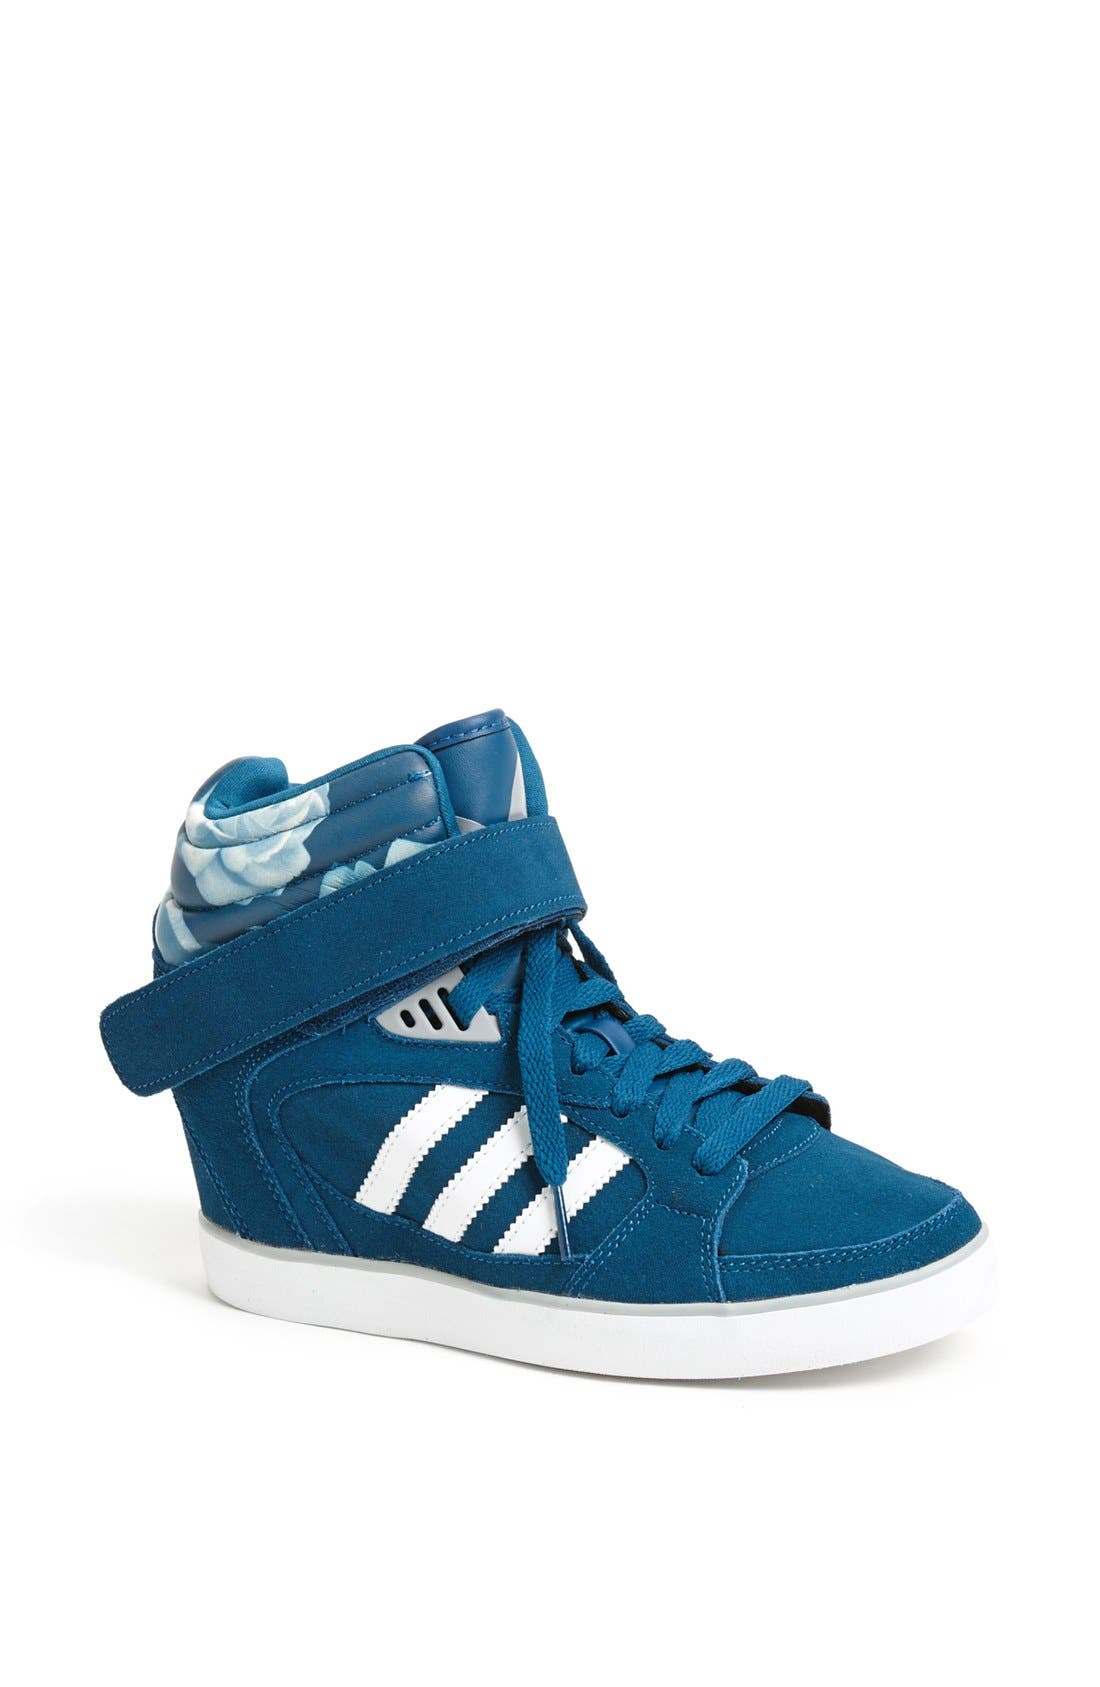 Alternate Image 1 Selected - adidas 'Amerlight' Wedge Sneaker (Women)